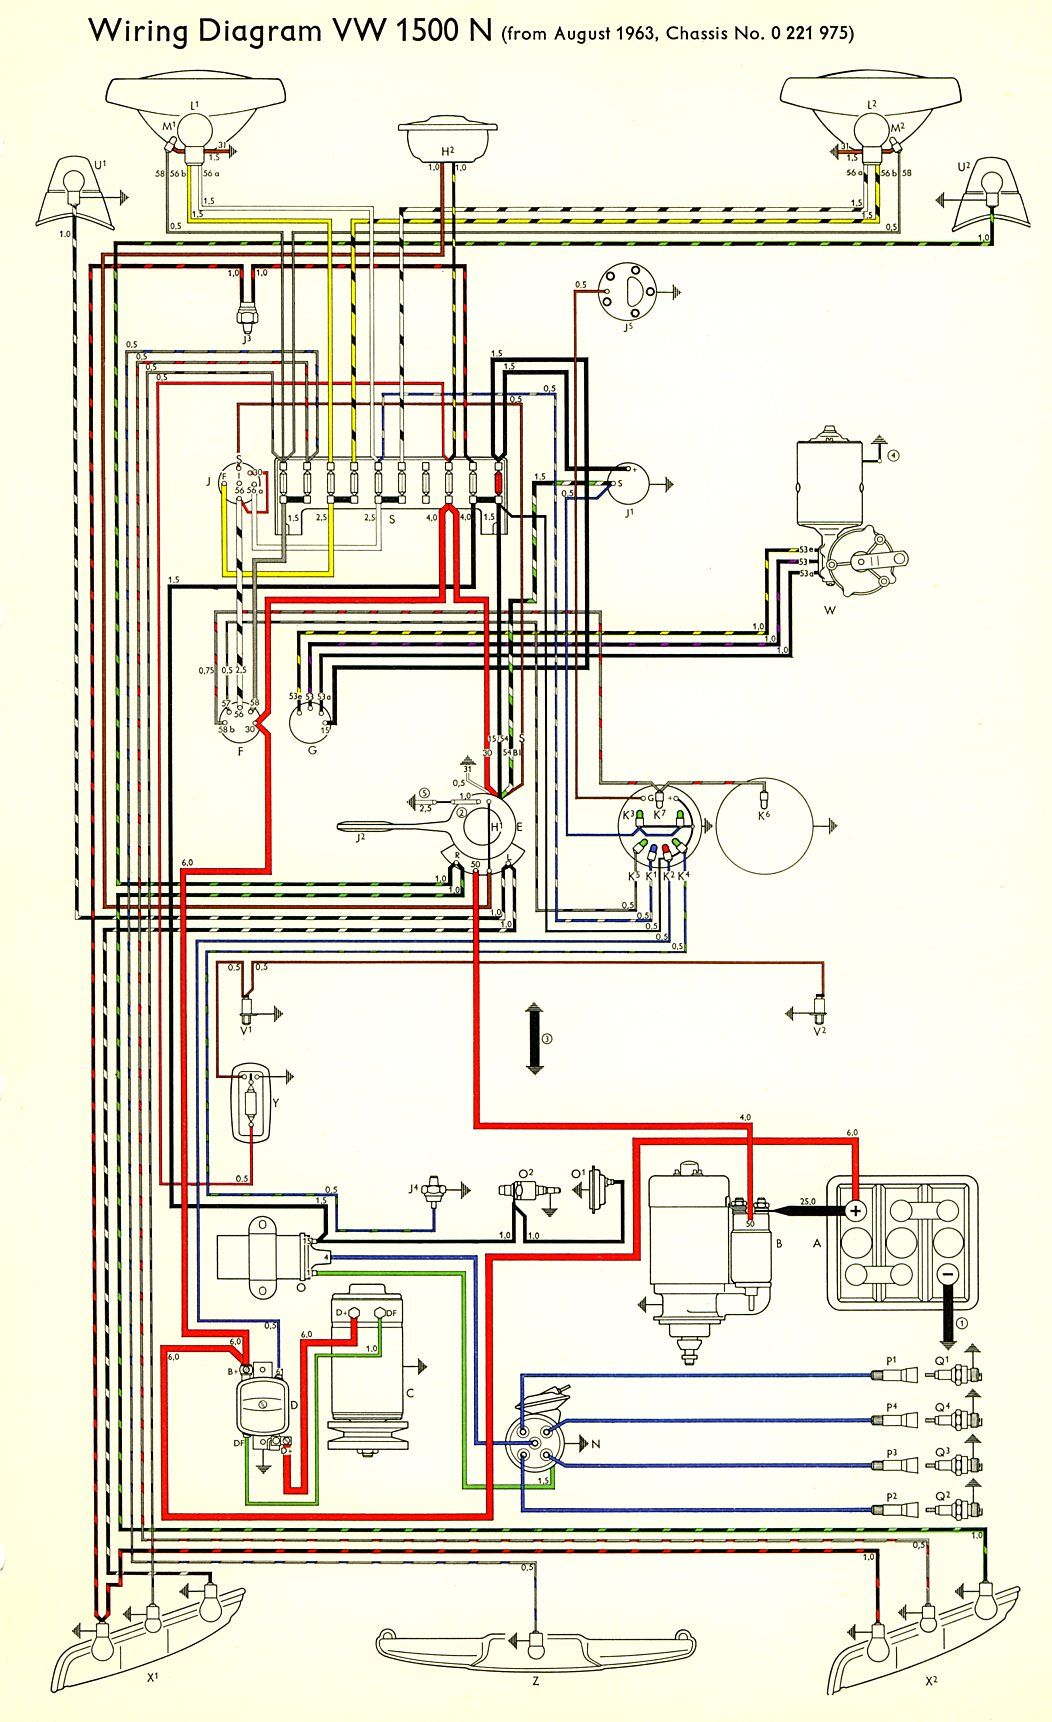 1964 Volkswagen Wiring Diagram 30 Images Type3 1500n 64 Thesamba Com Type 3 Diagrams 1968 At